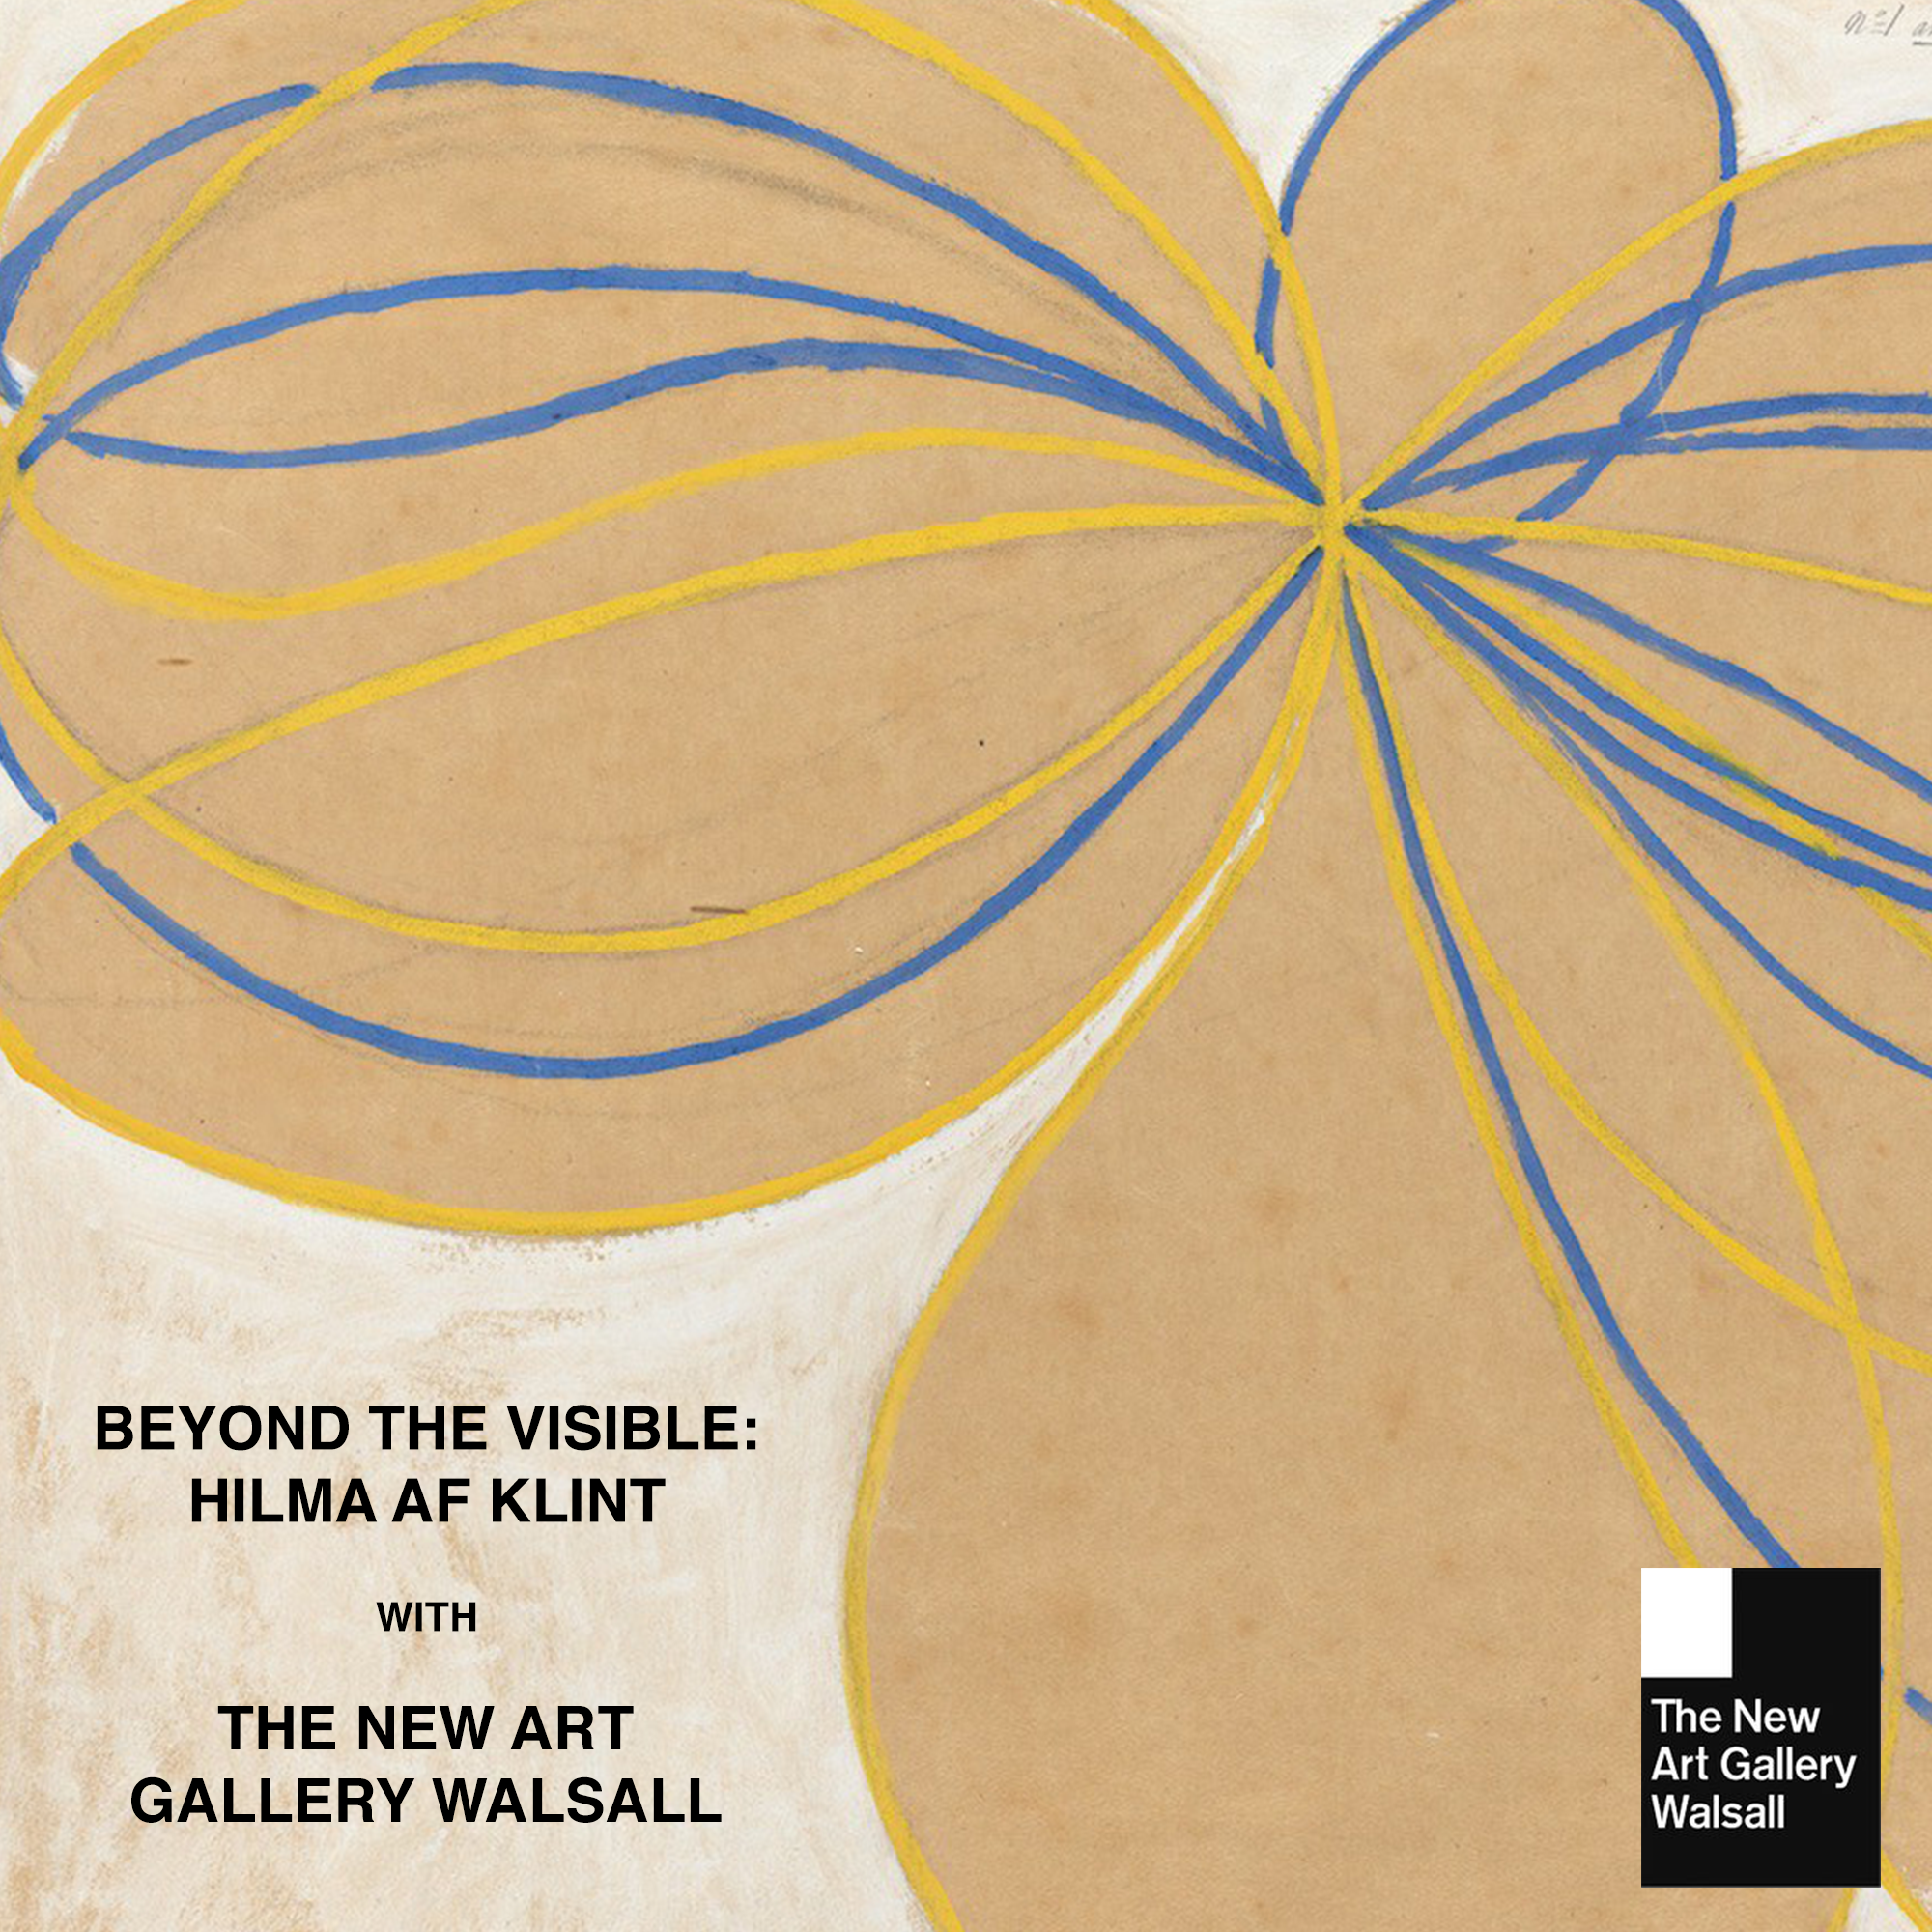 Beyond the Visible: Hilma af Klint with The New Art Gallery Walsall